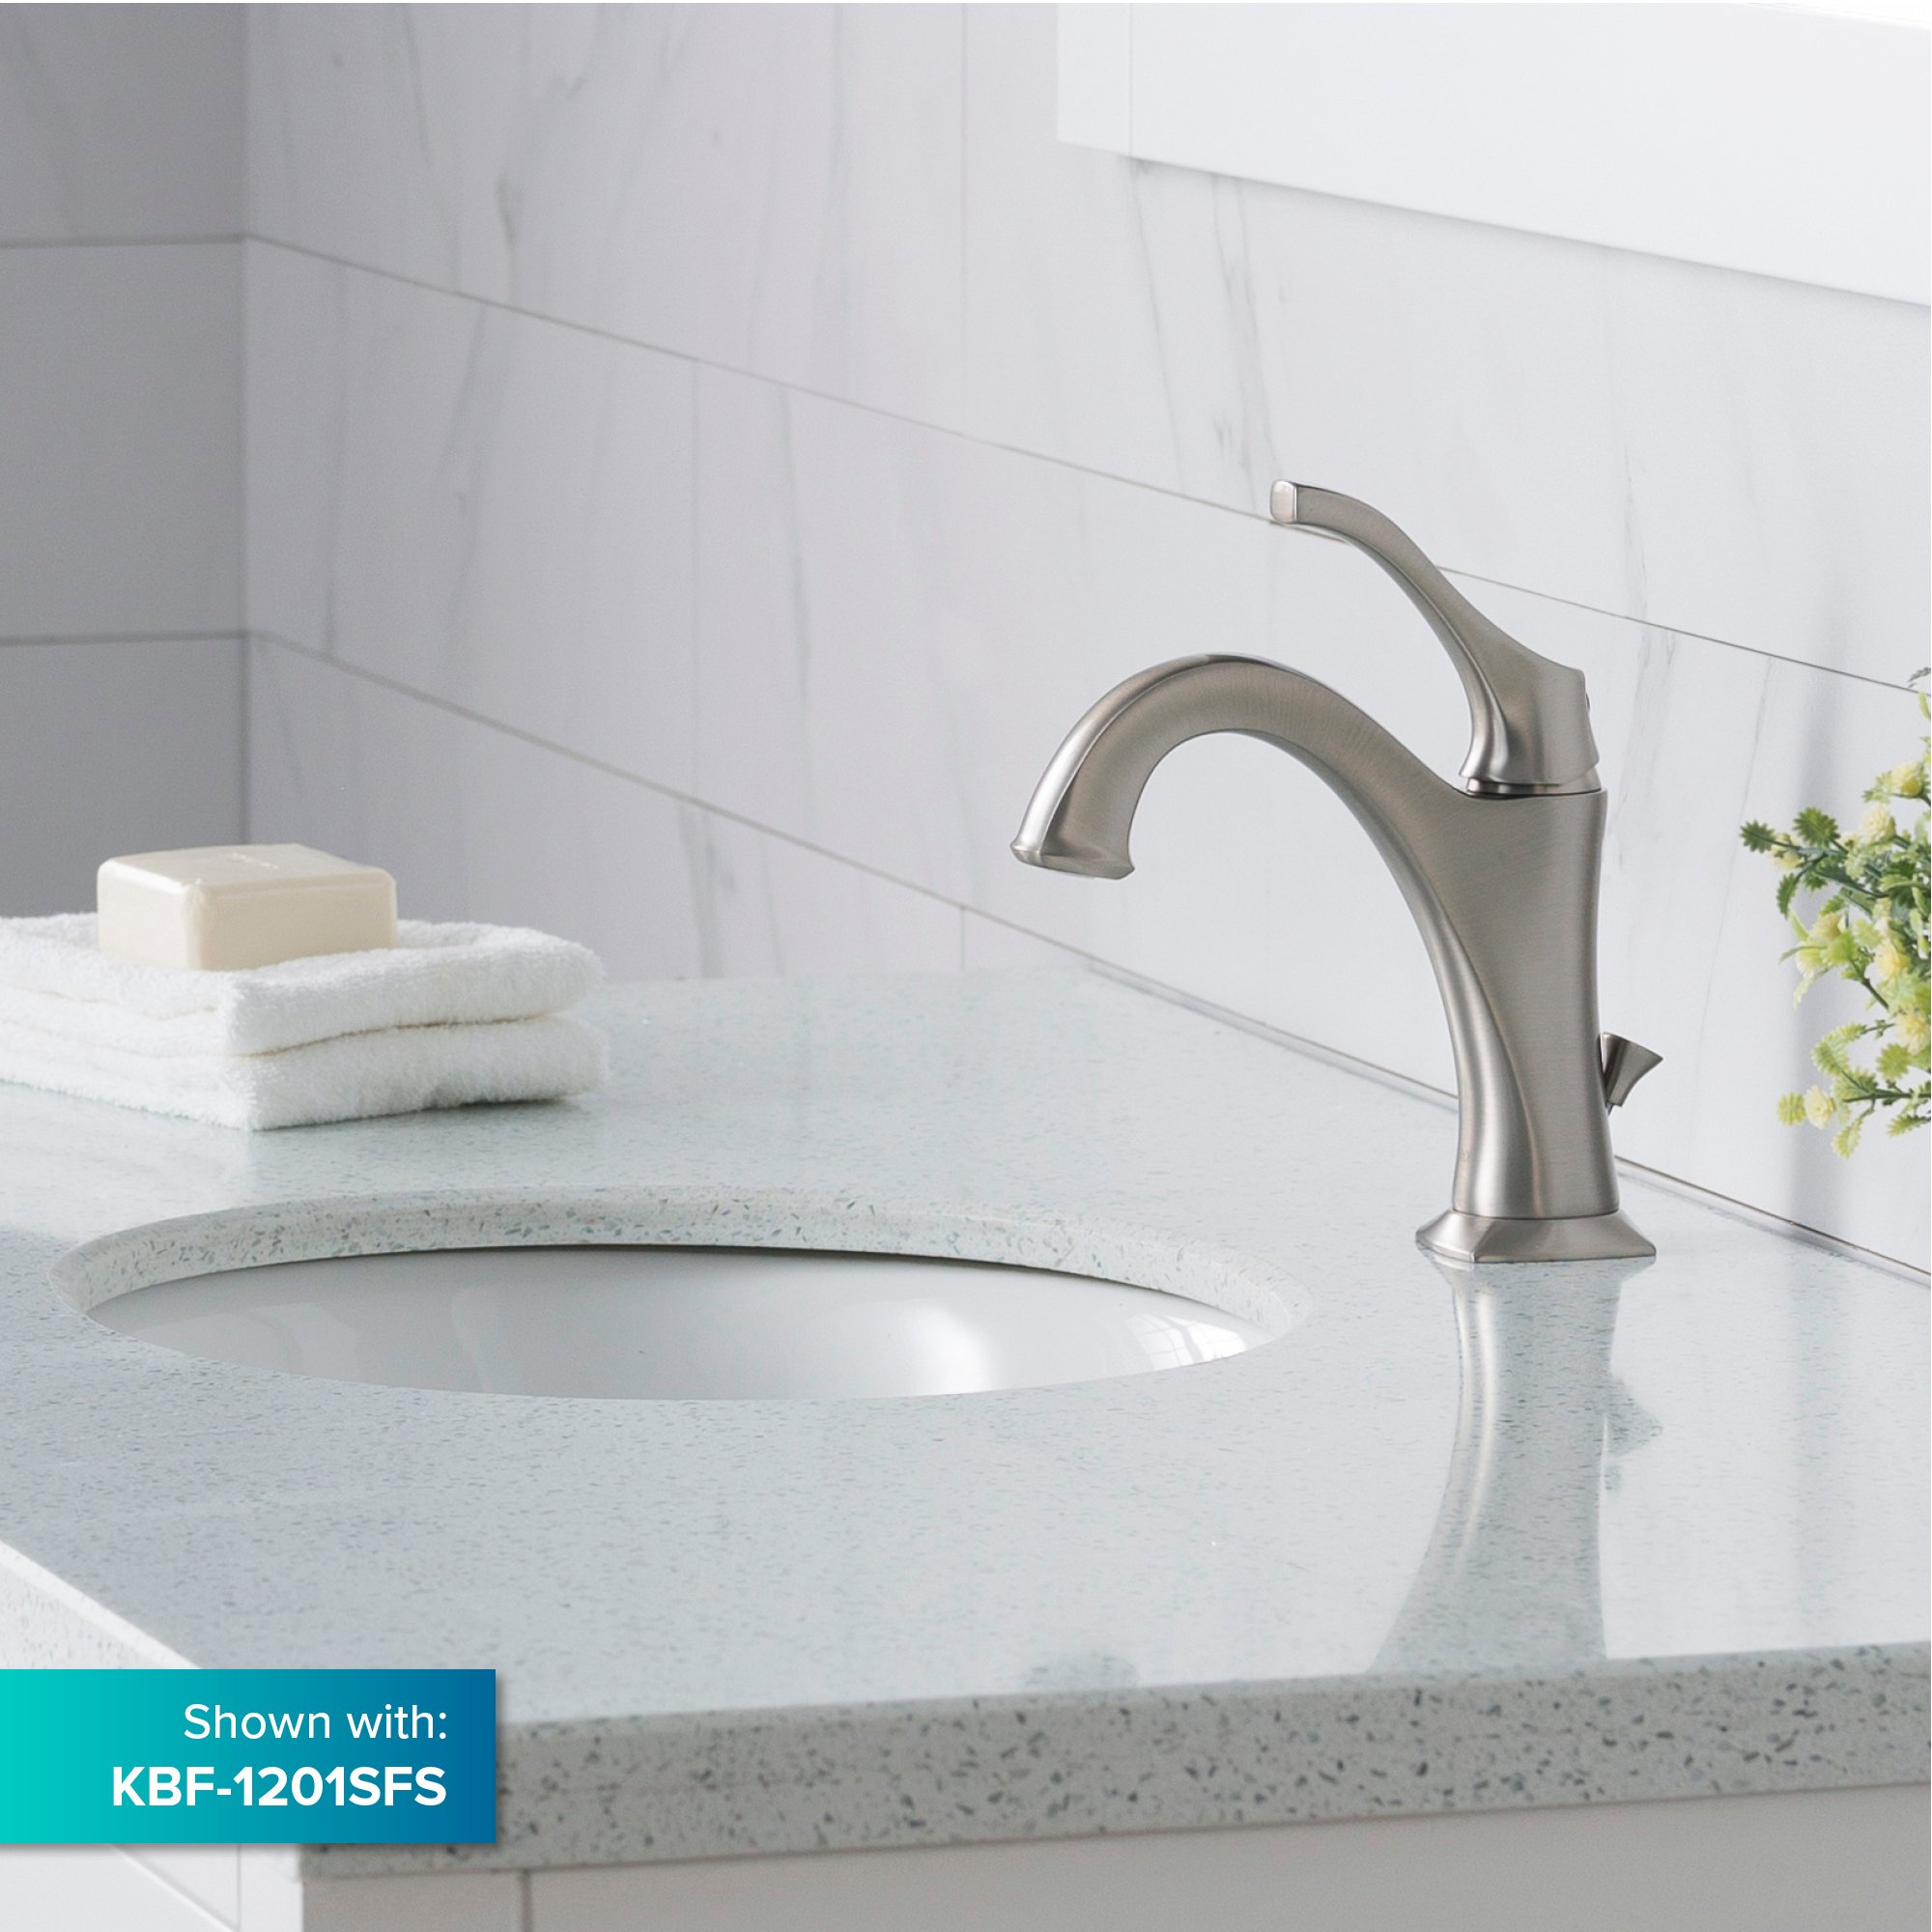 KRAUS Elavo 17 Inch Oval Undermount Porcelain Ceramic Bathroom Sink in White with Overflow, KCU-211 by Kraus (Image #9)